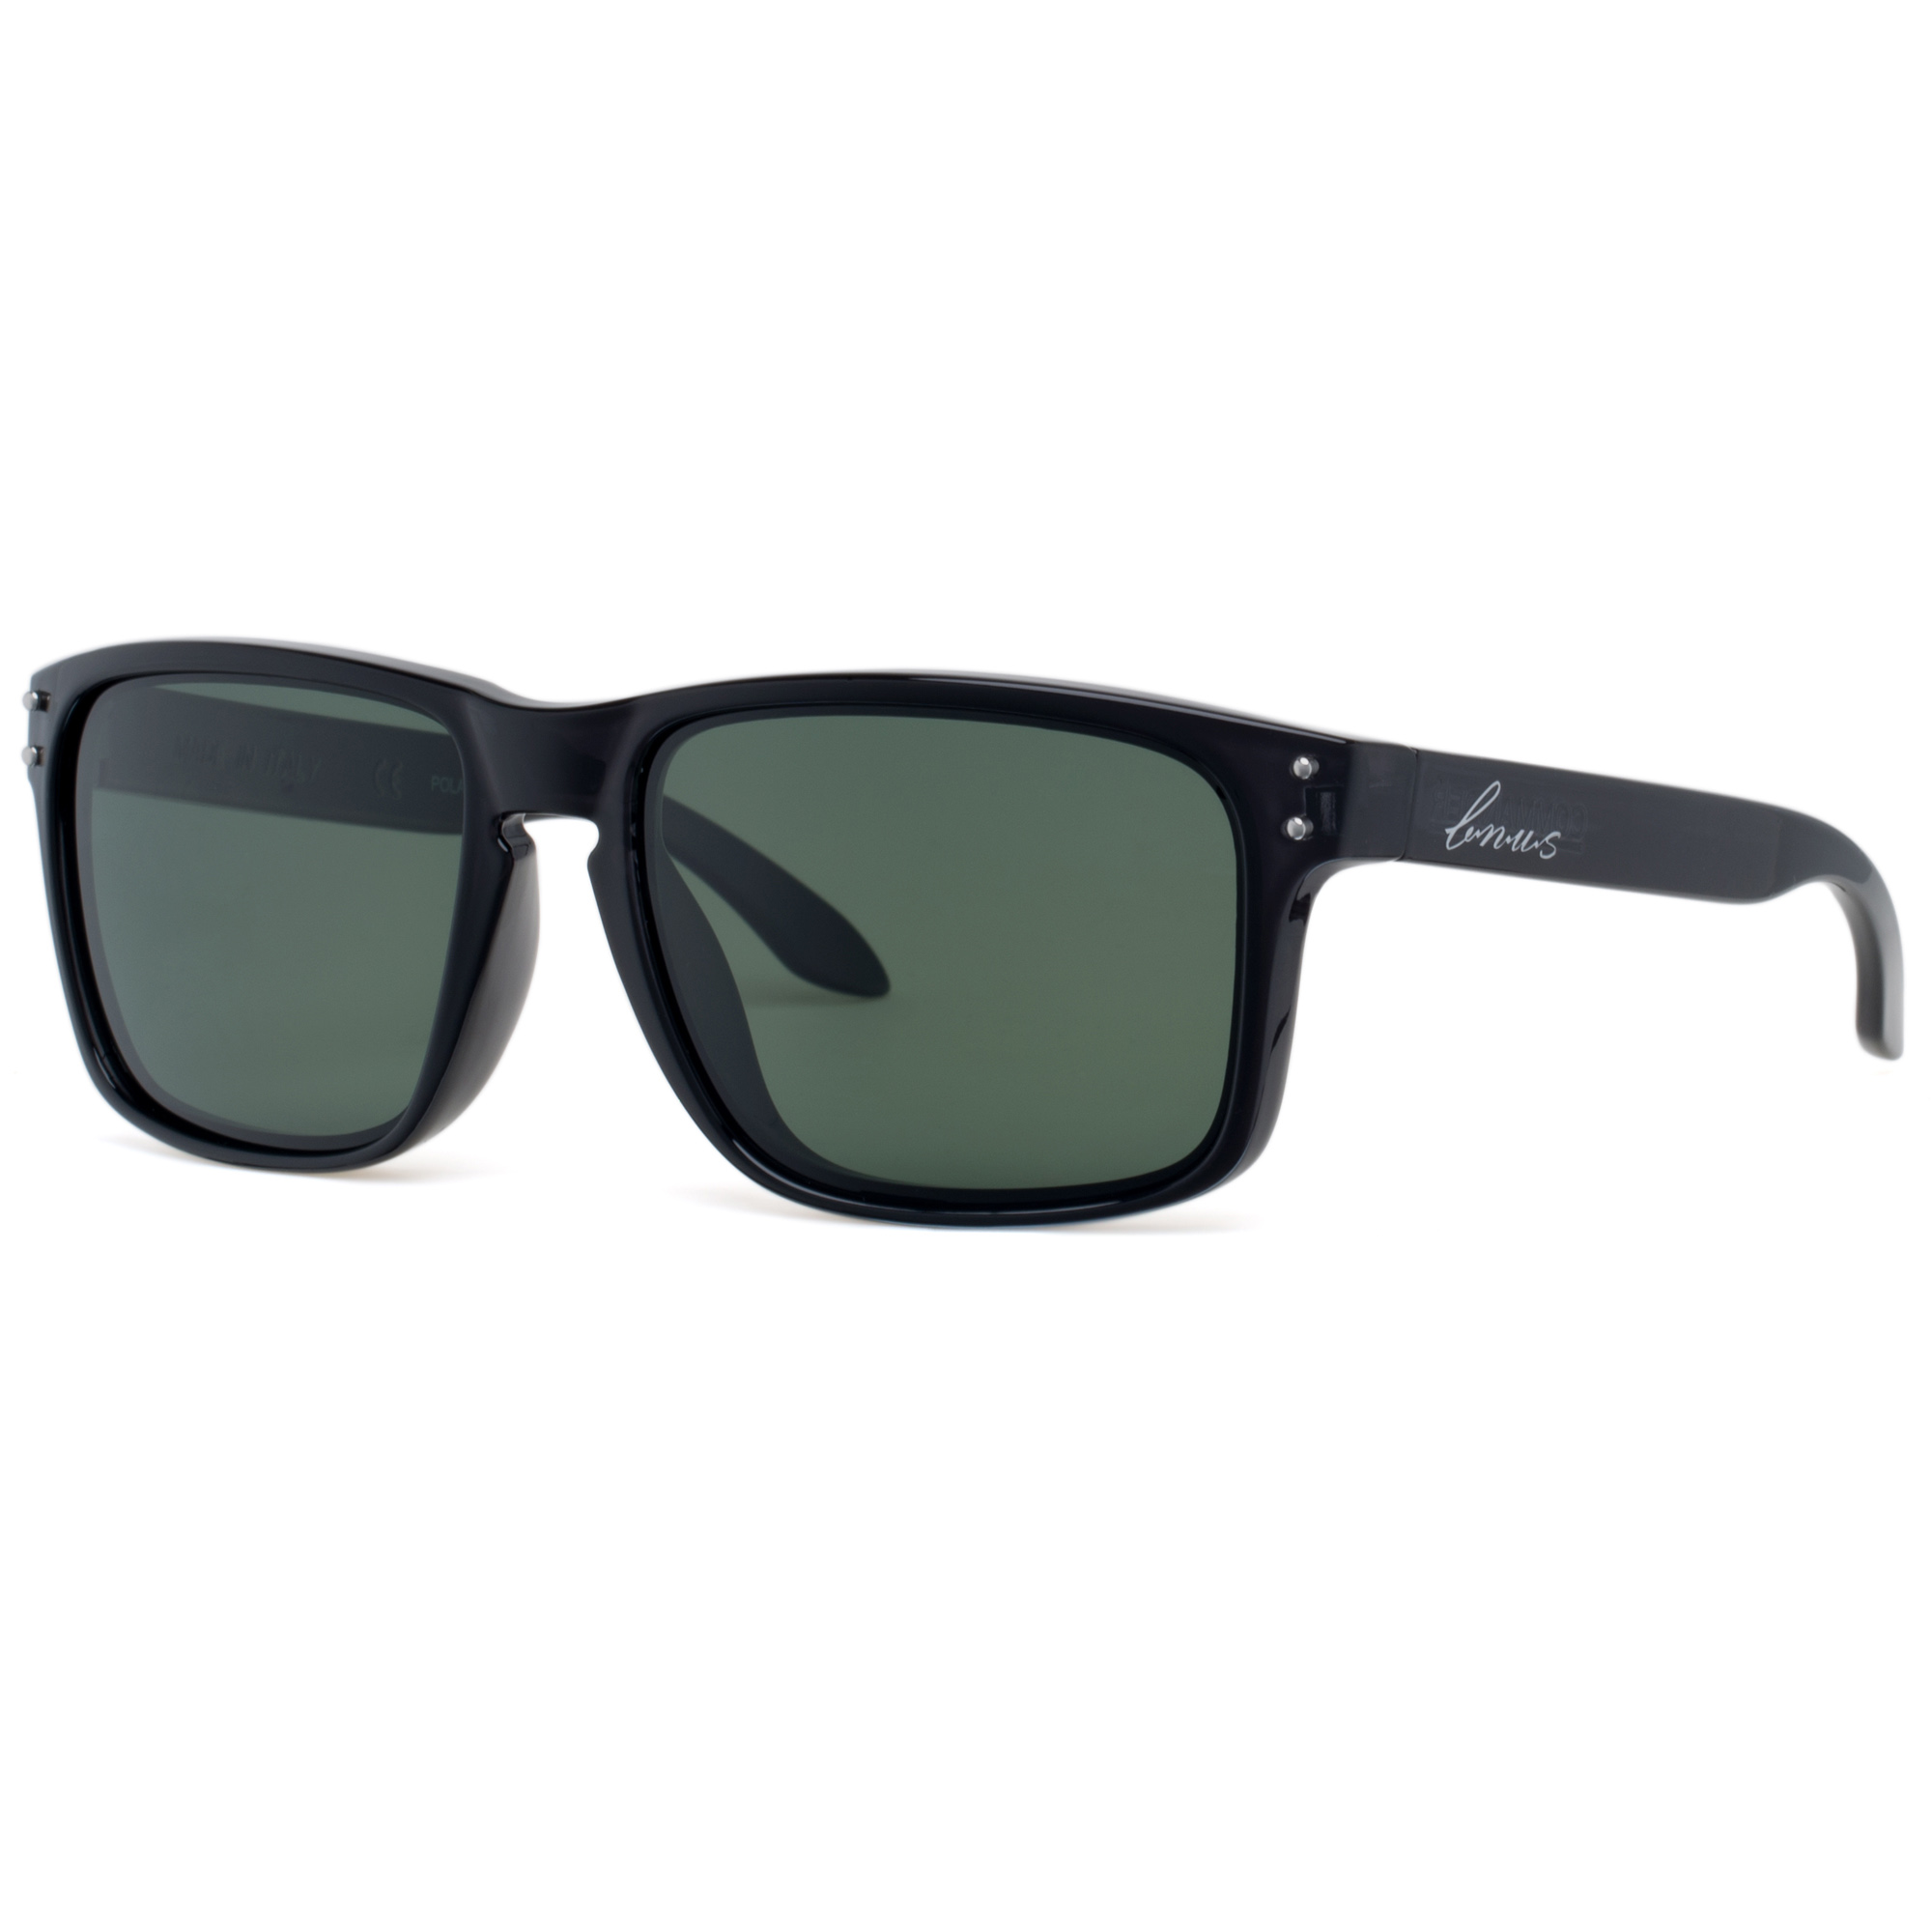 Bnus italy made classic sunglasses corning real glass lens w polarized option